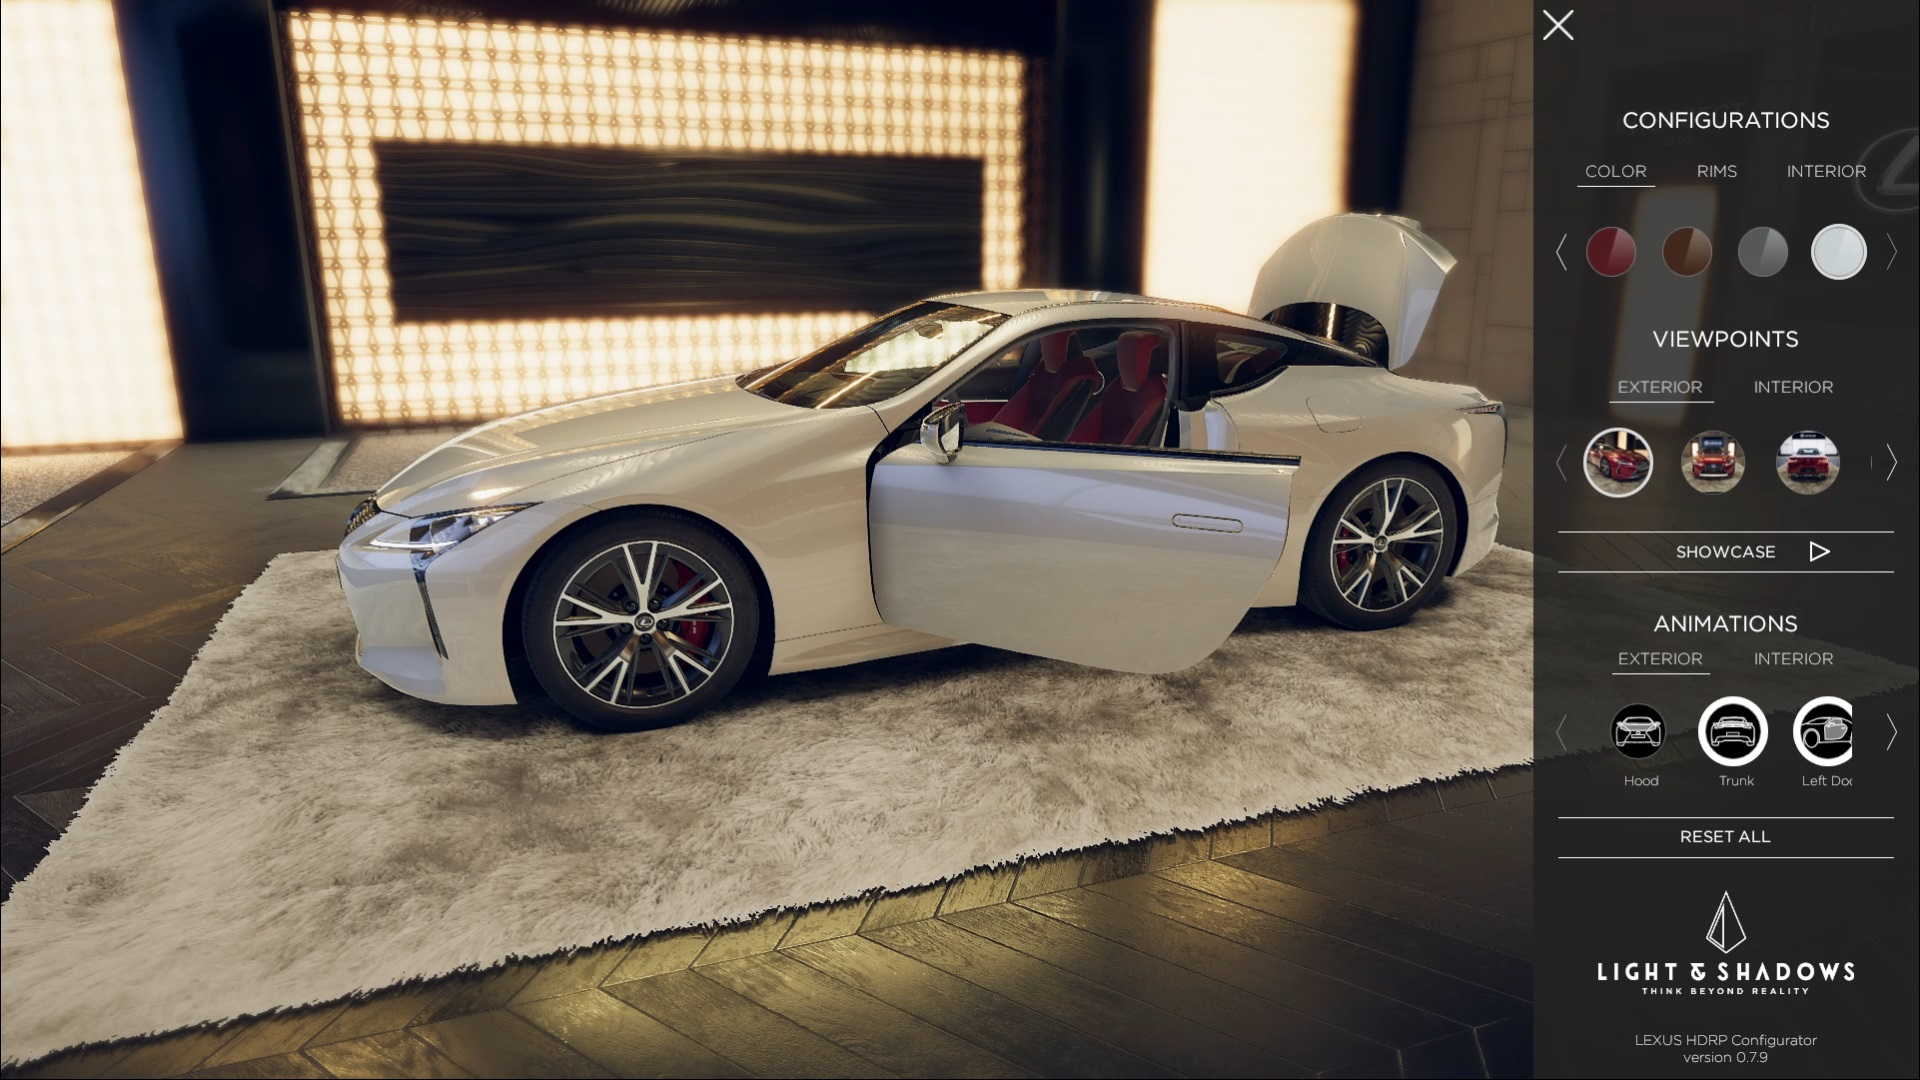 Lexus white LC500 in 3D configurator by Light & Shadows